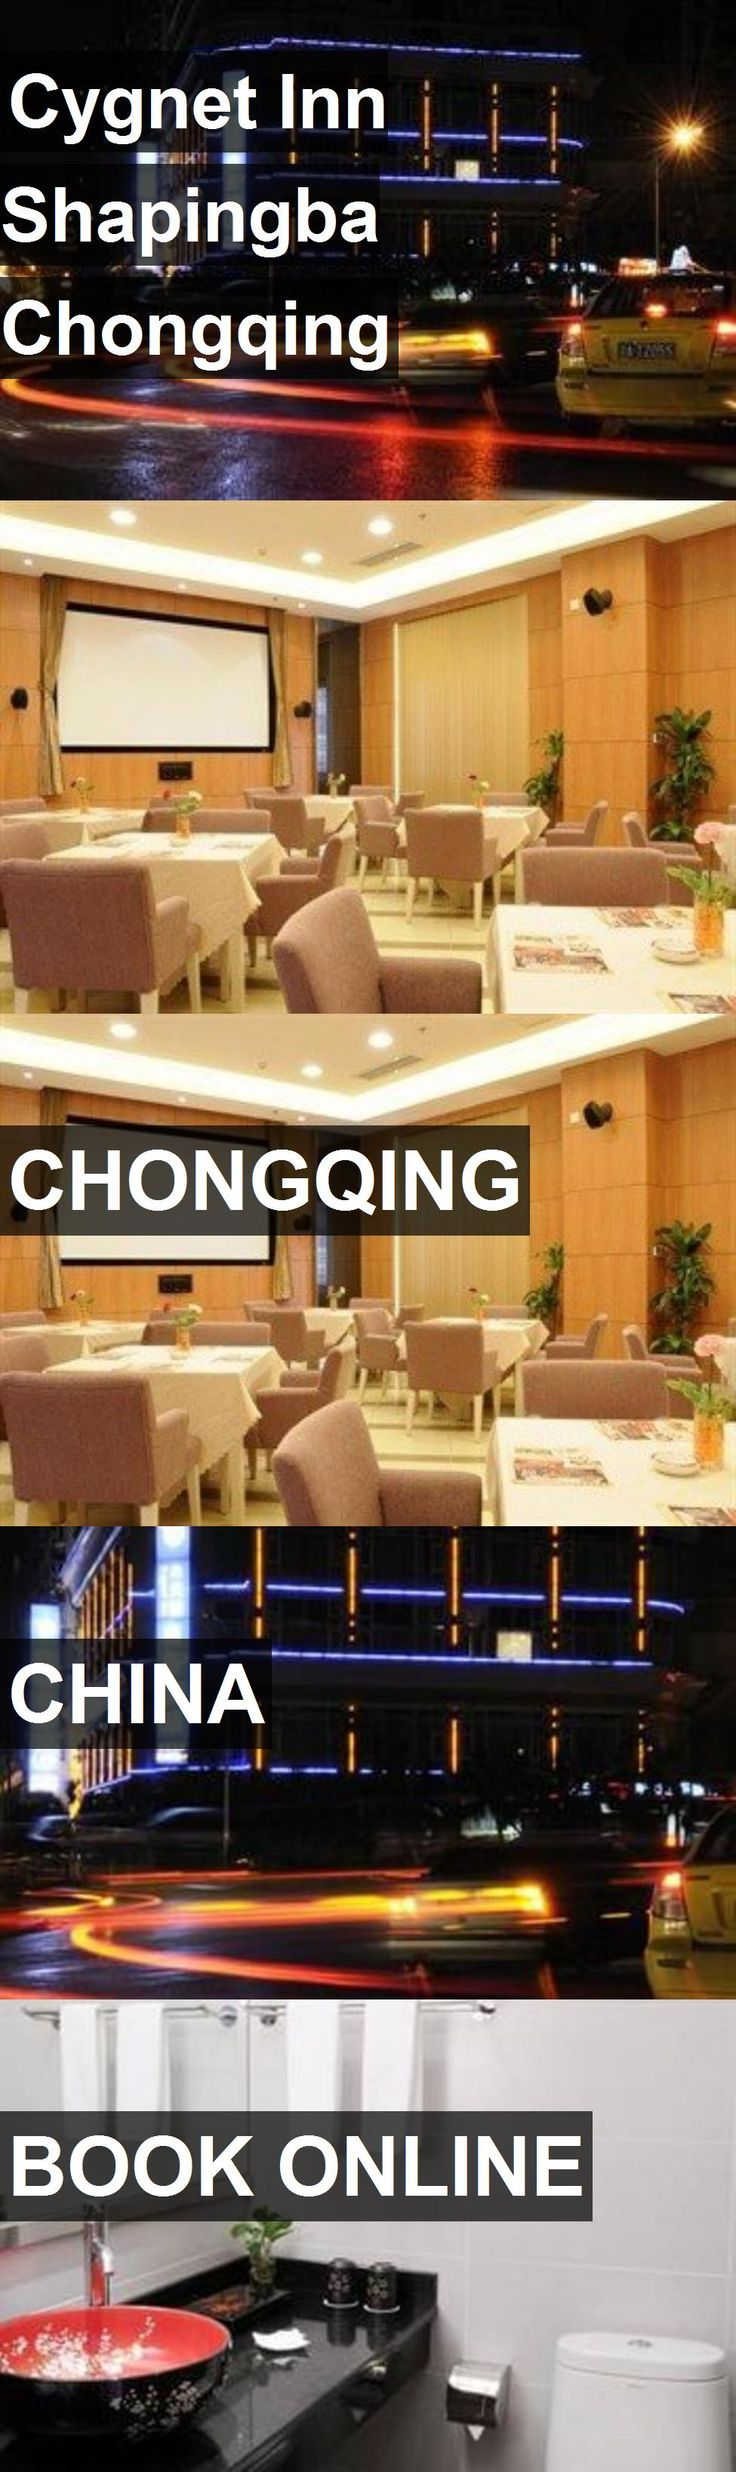 Hotel Cygnet Inn Shapingba Chongqing in Chongqing, China. For more information, photos, reviews and best prices please follow the link. #China #Chongqing #travel #vacation #hotel